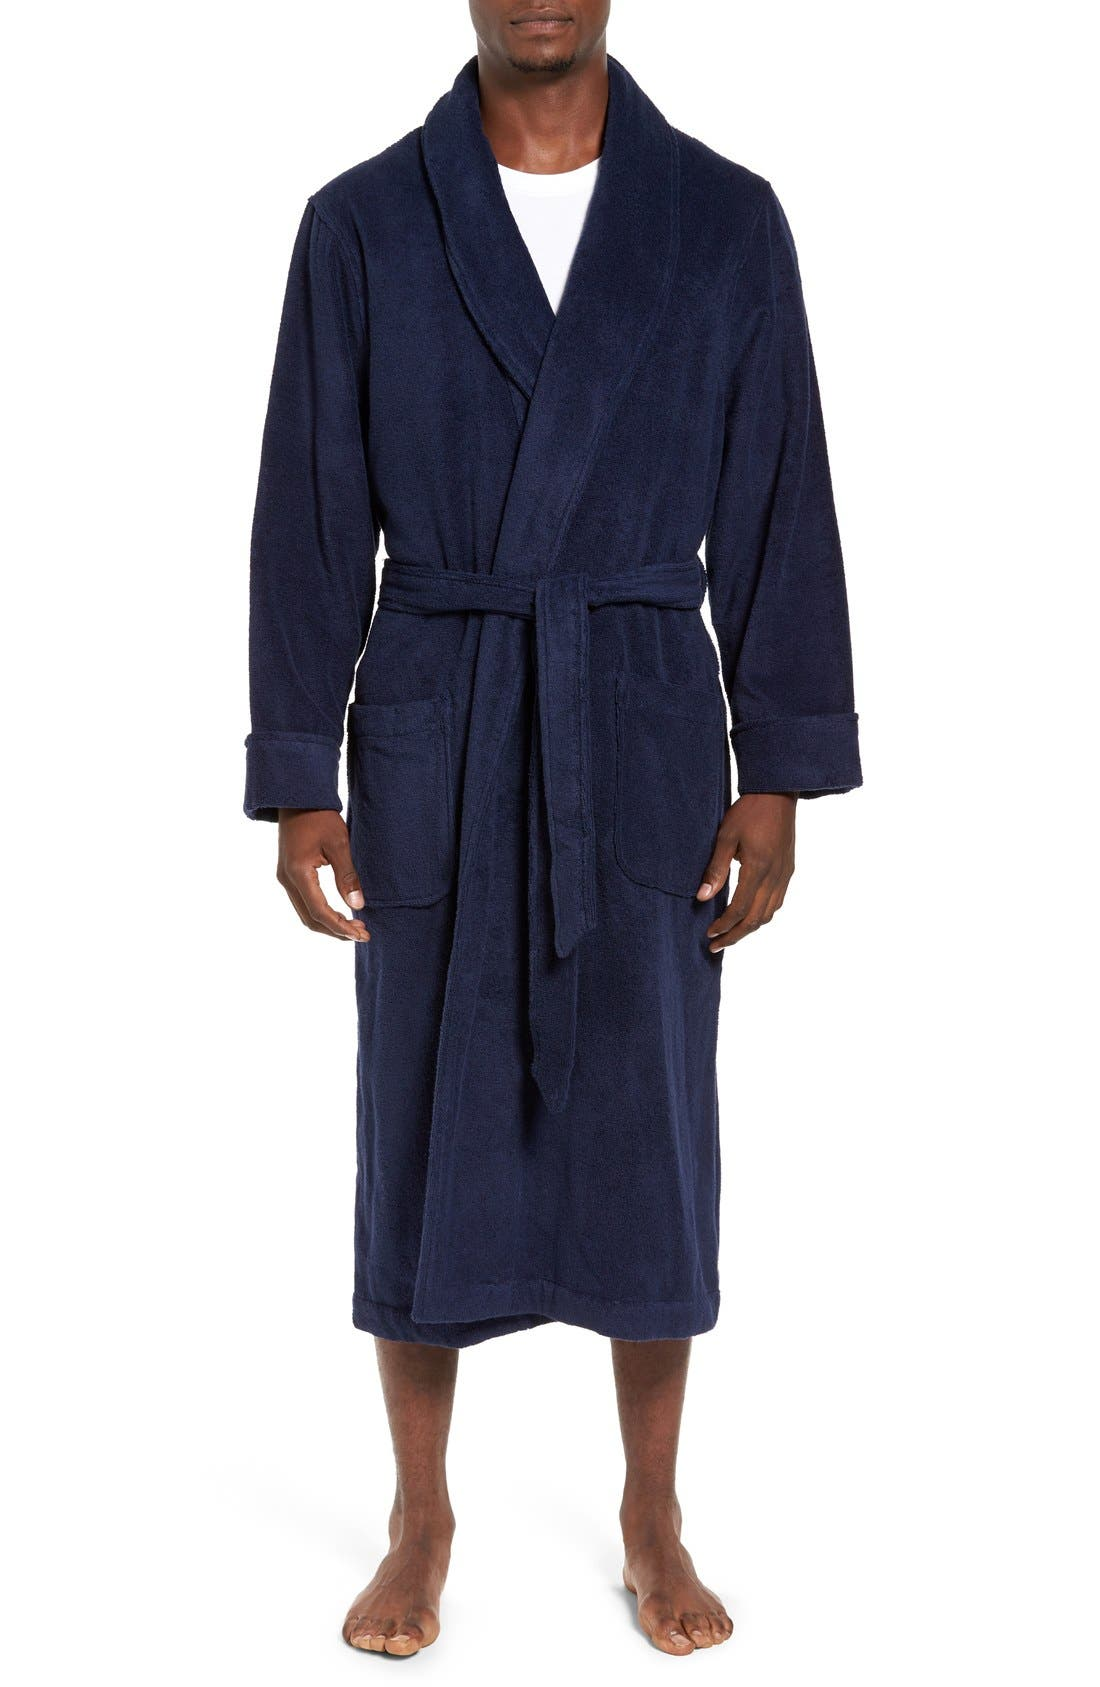 Nordstrom Hydro Cotton Terry Robe